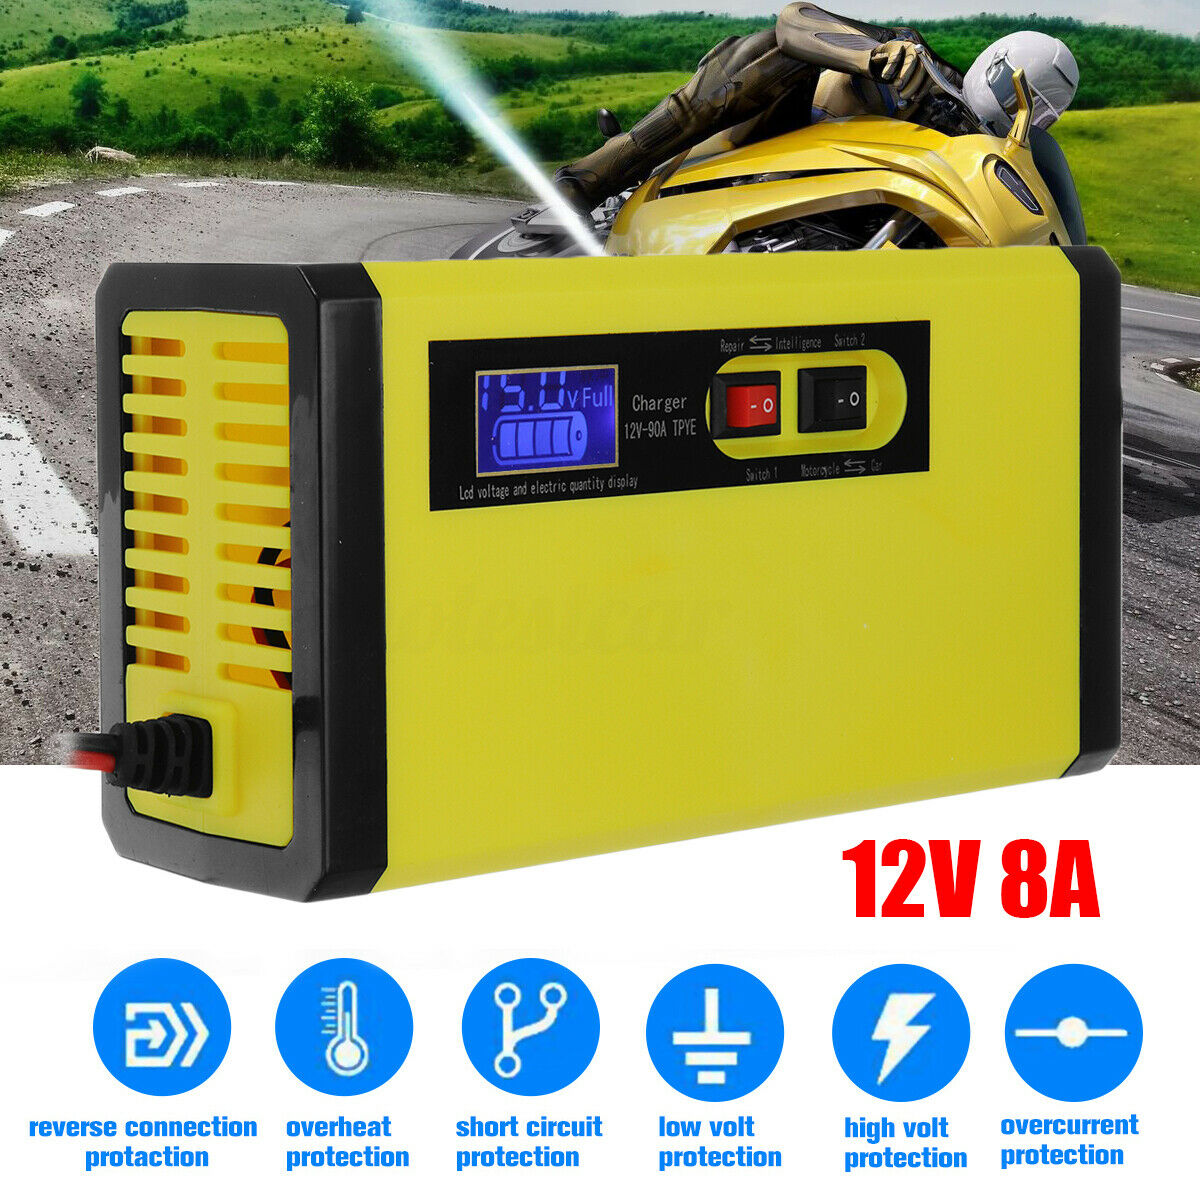 12V 8A Car Battery Charger Smart Intelligent Pulse Repair LCD Display Lead Acid